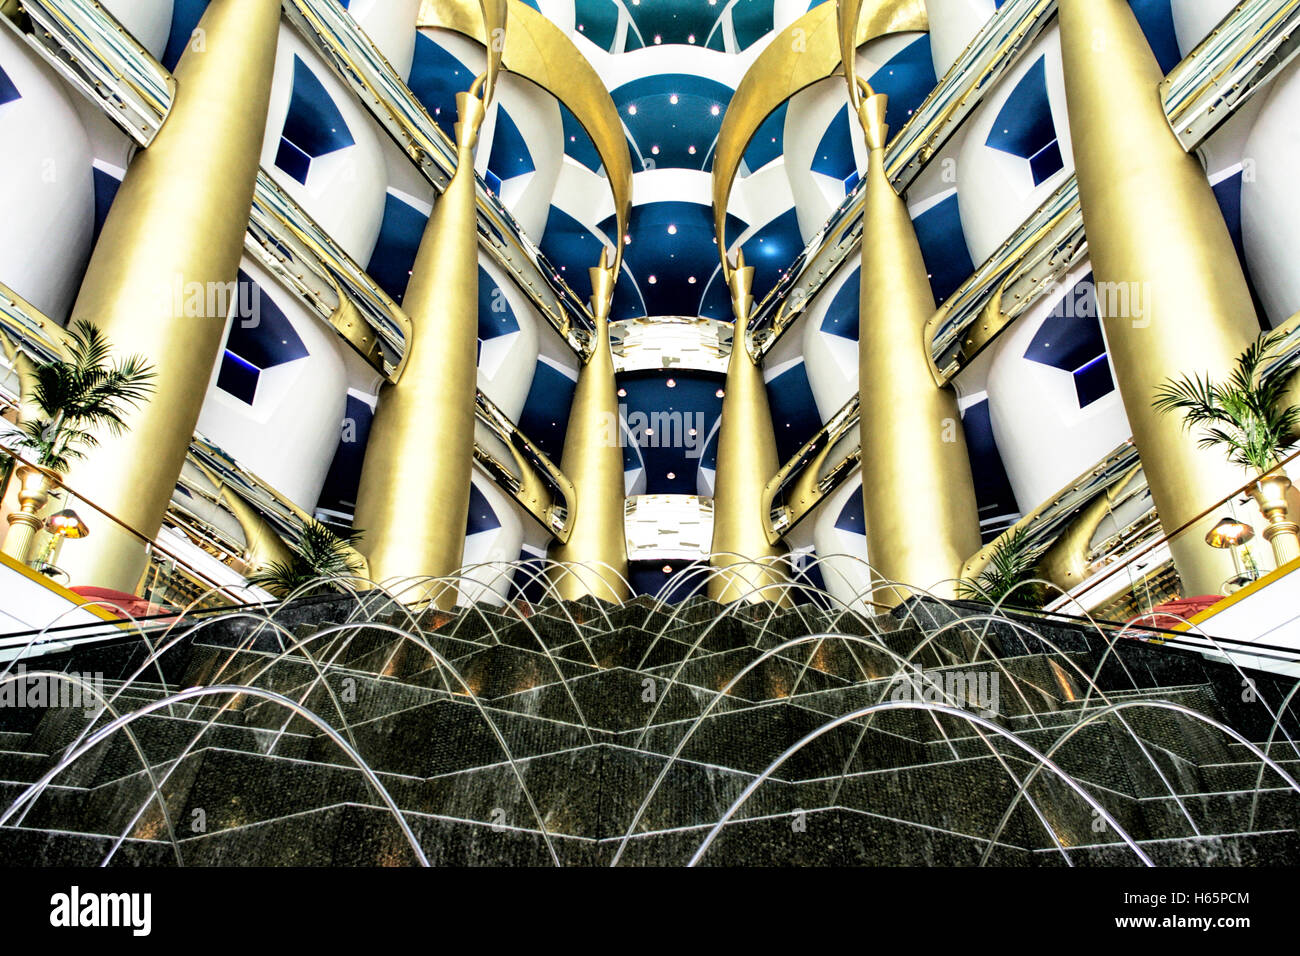 Atrium with fountains in the Burj Al Arab hotel, Dubai - Stock Image